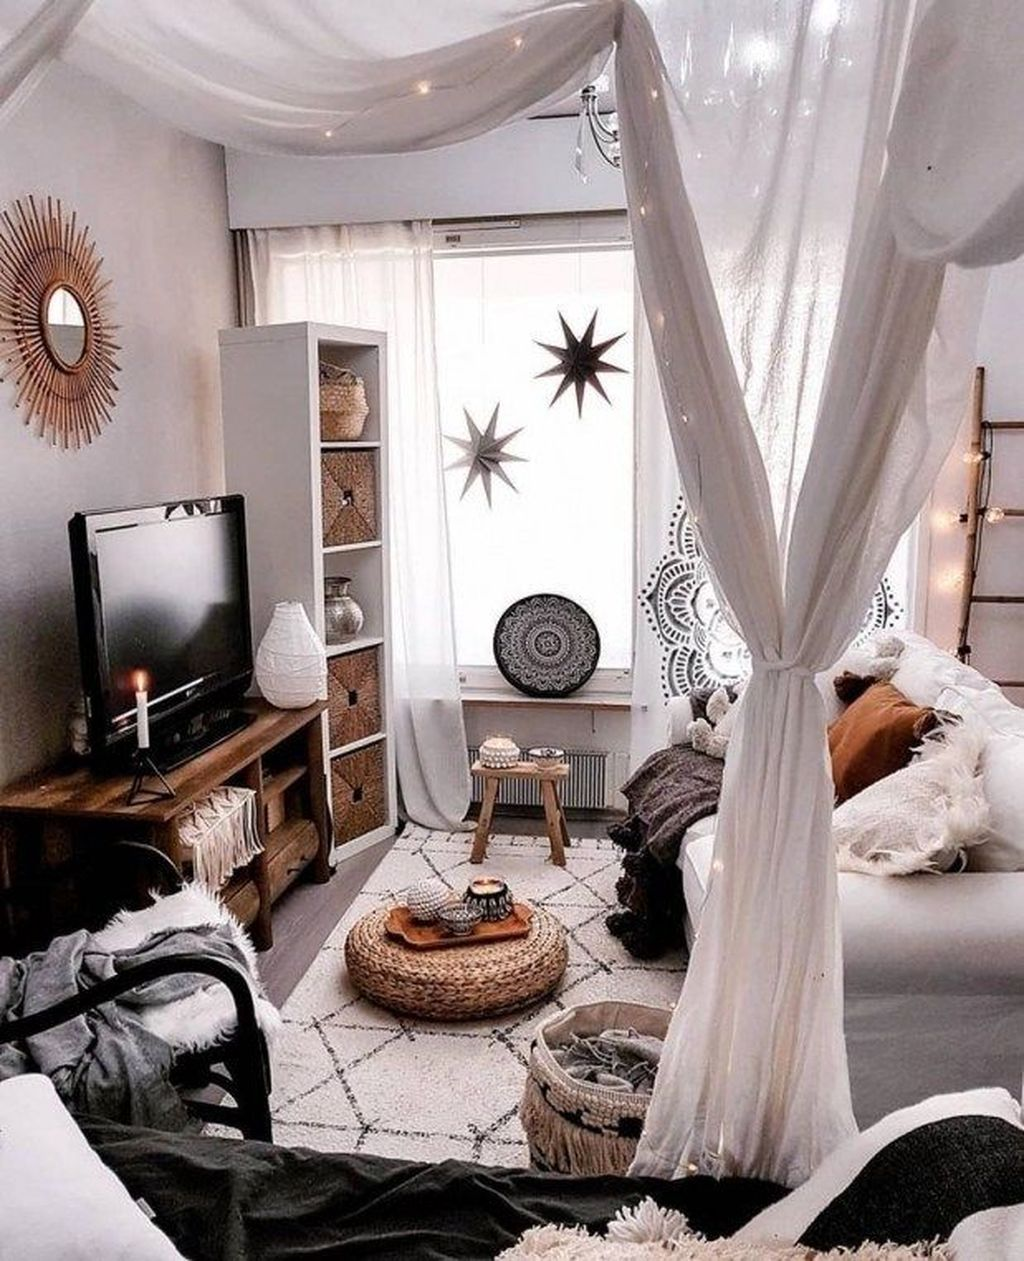 The Best Rustic Bohemian Living Room Decor Ideas 10